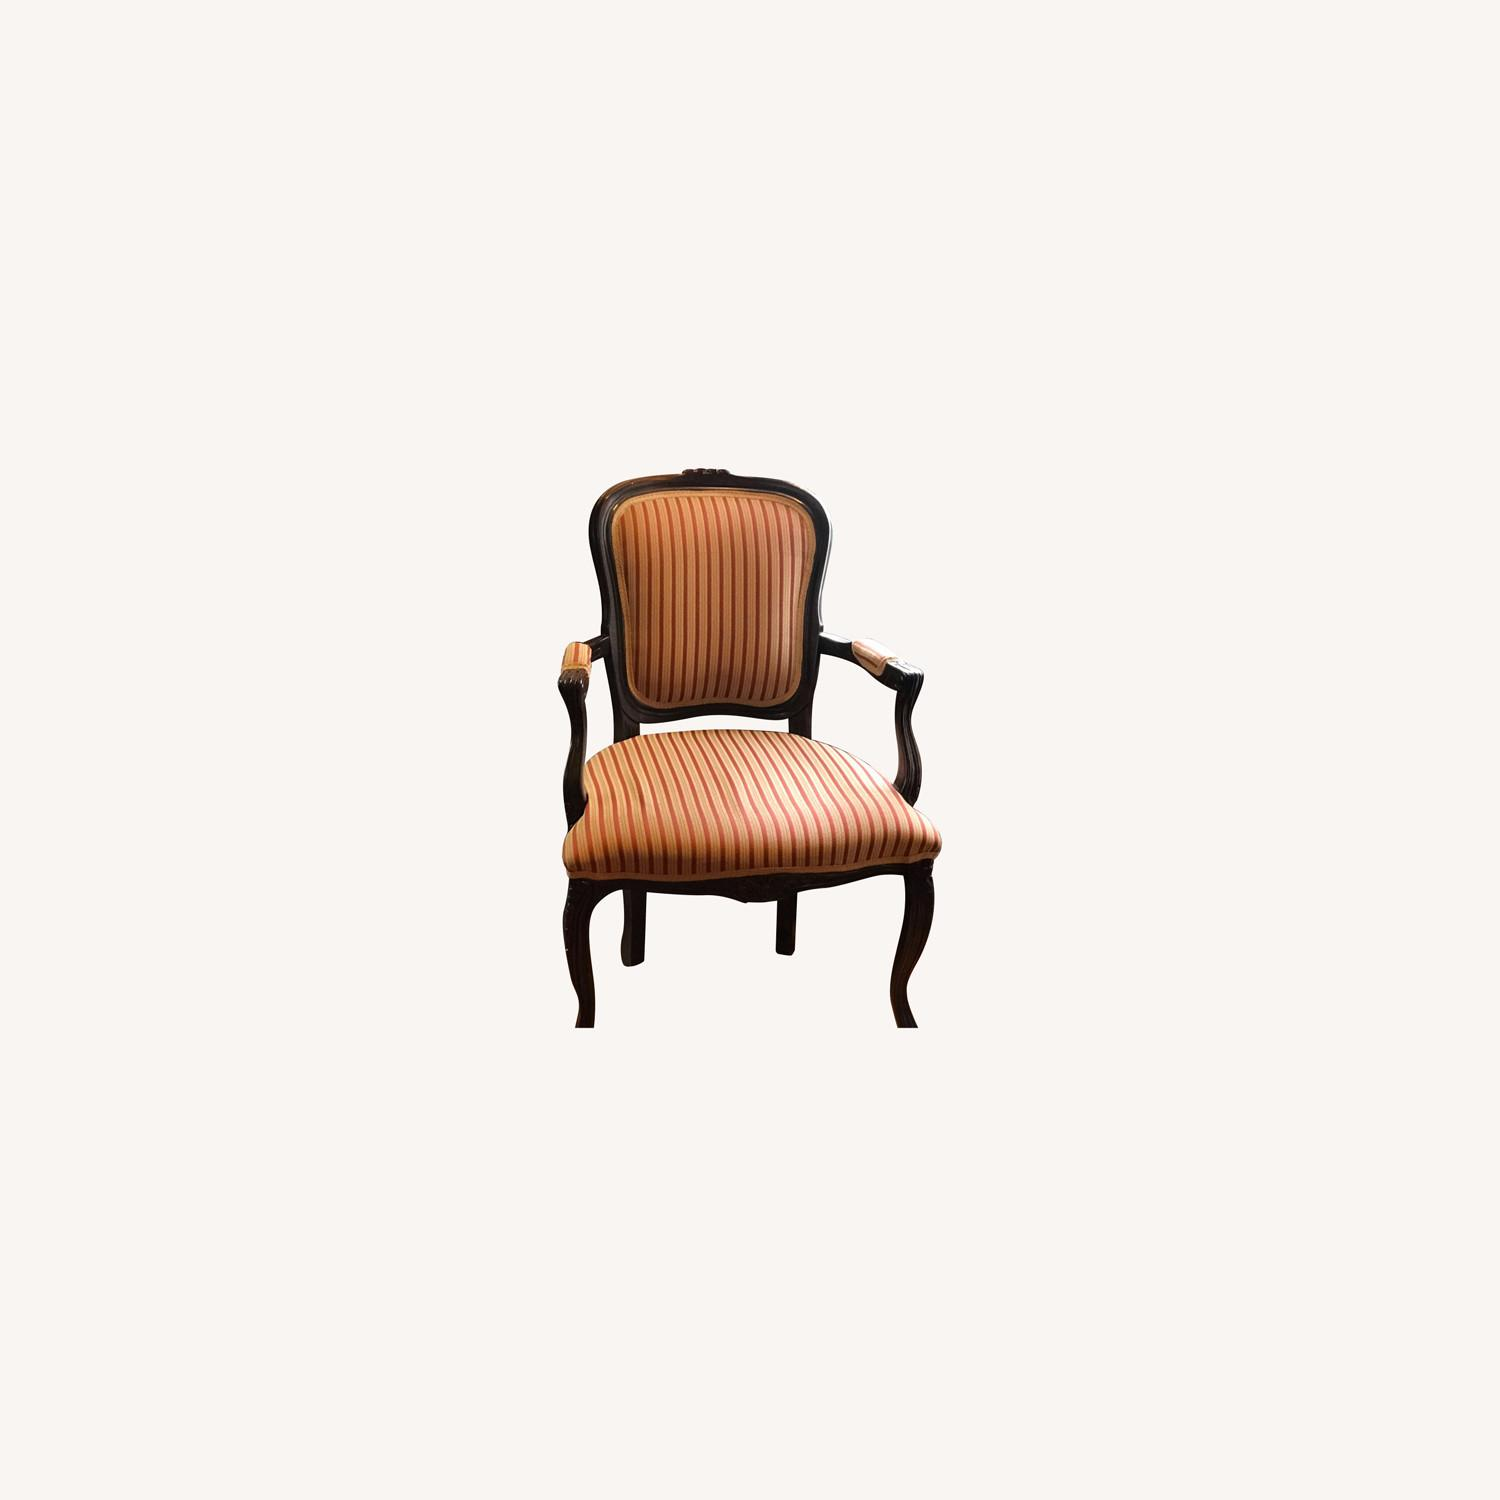 Raymour & Flanigan Striped Accent Chairs - image-0